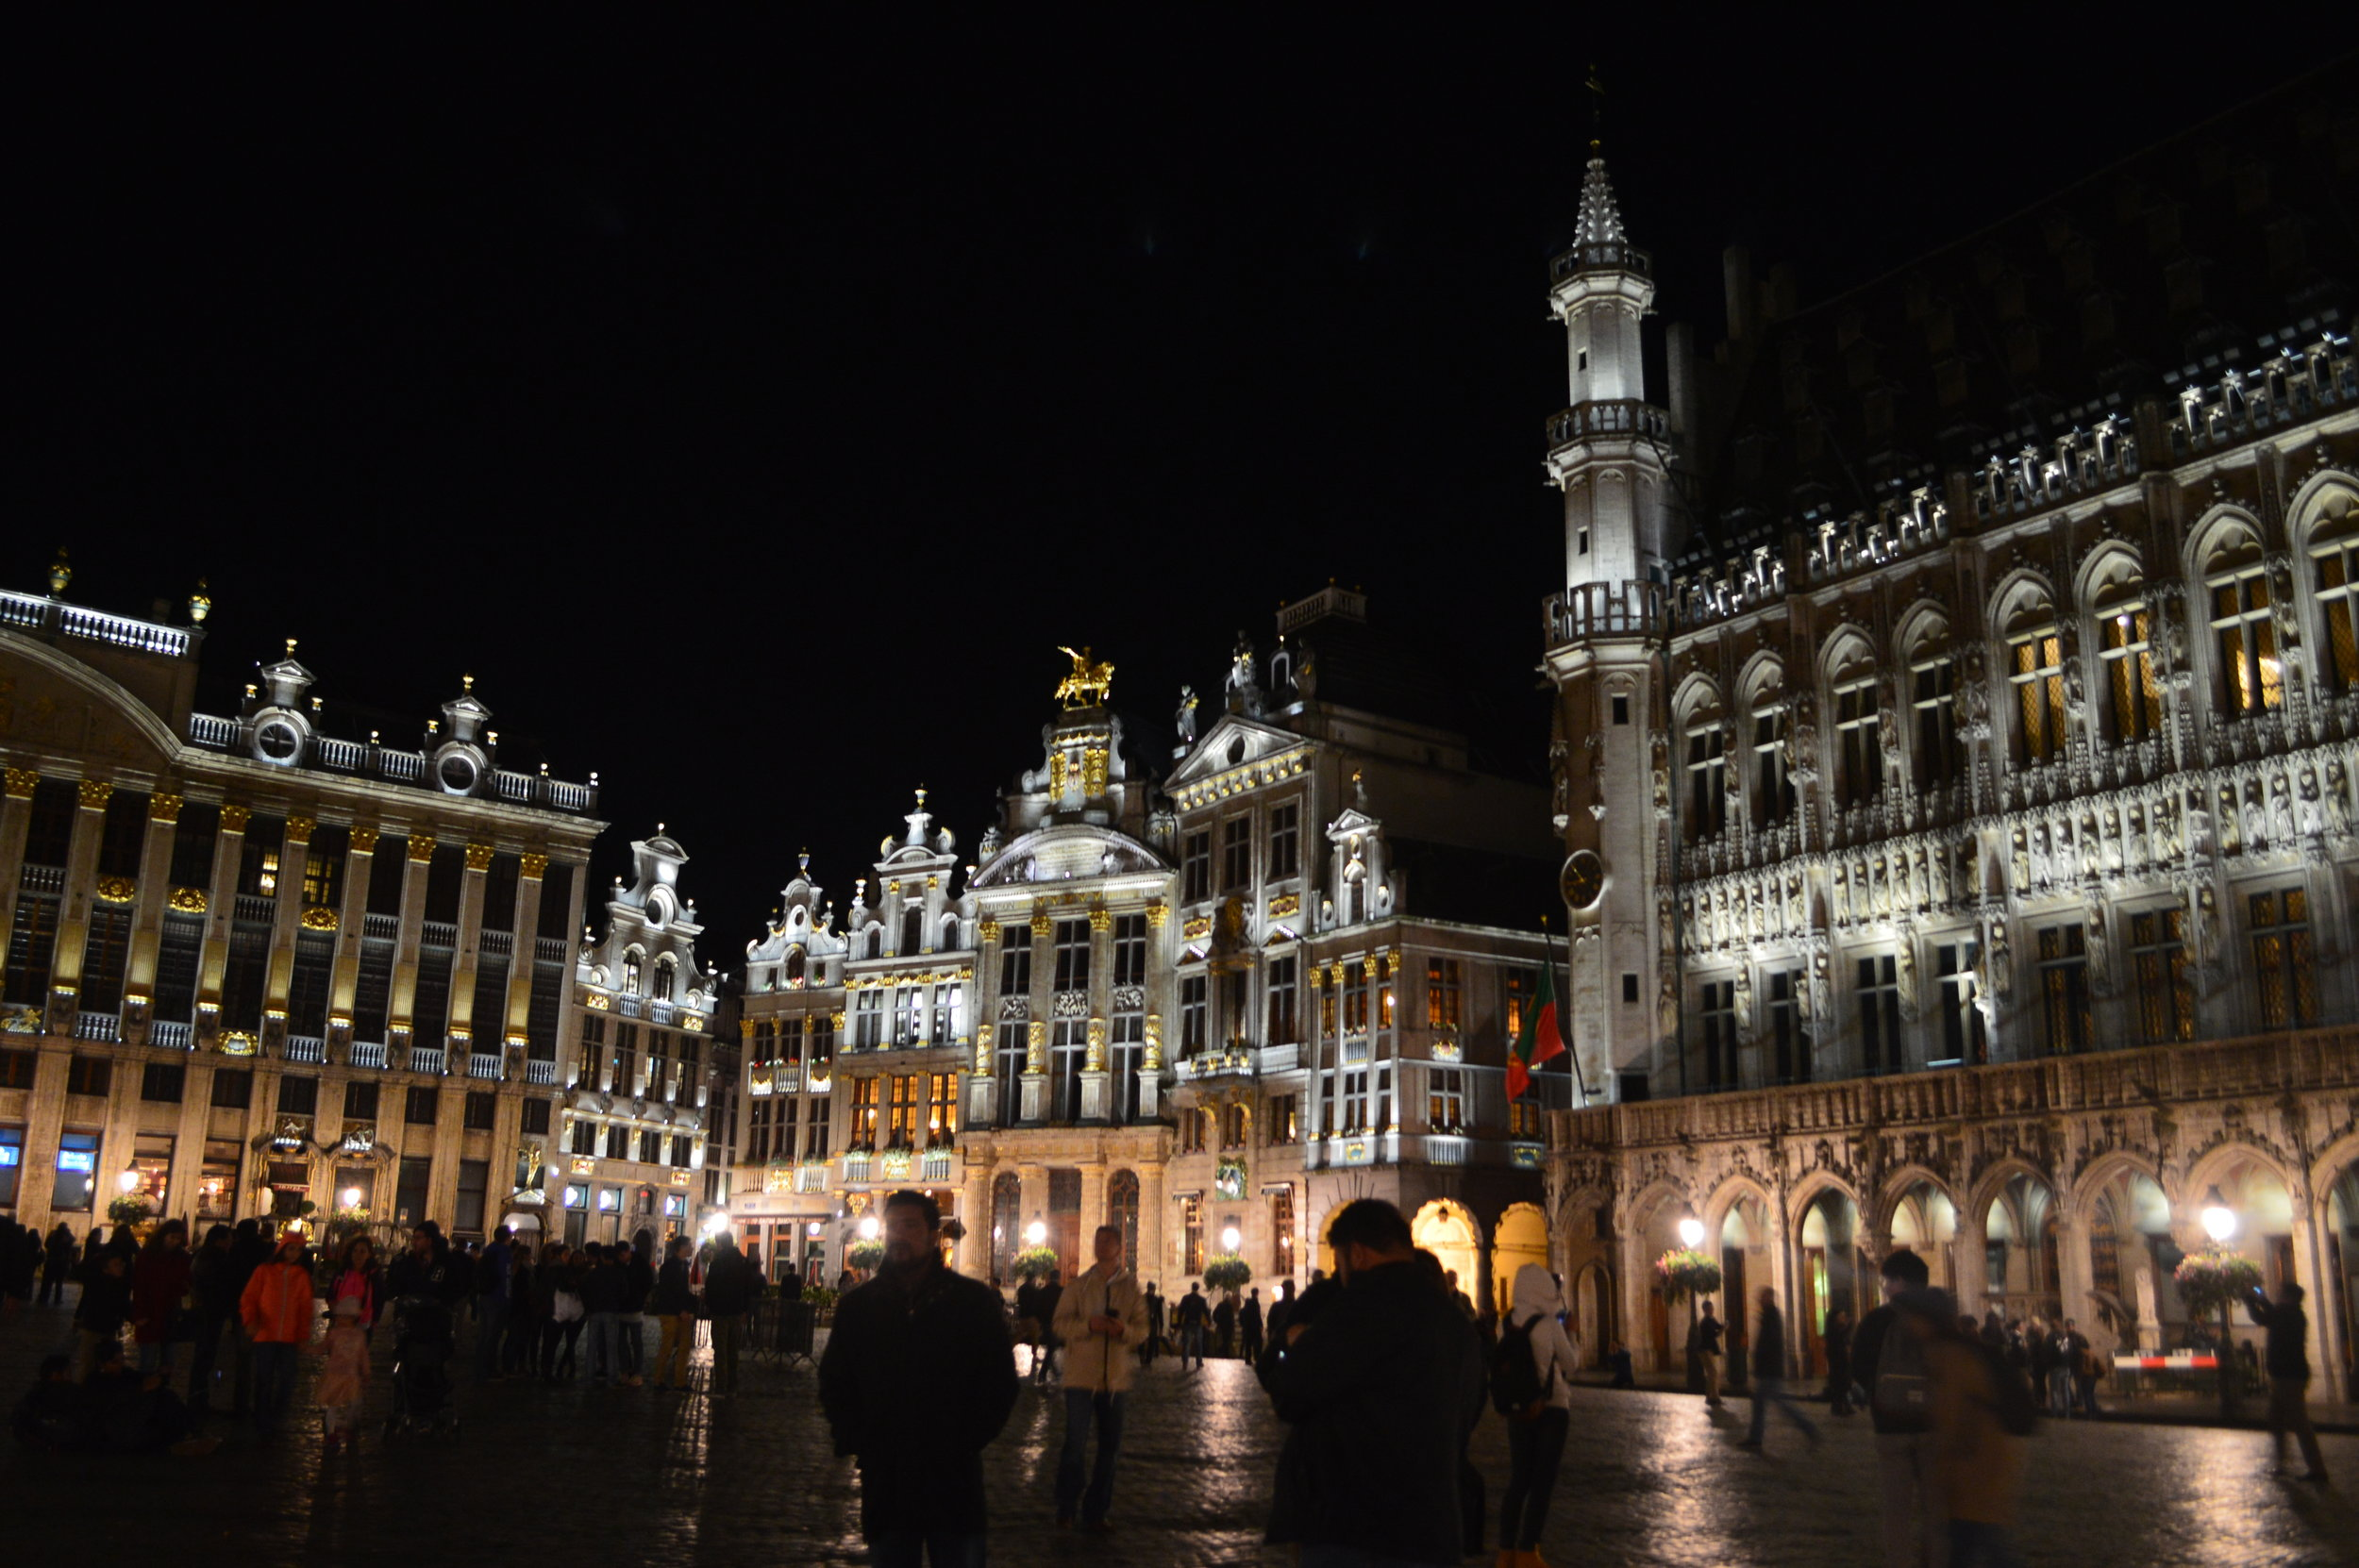 The Grote Markt at night